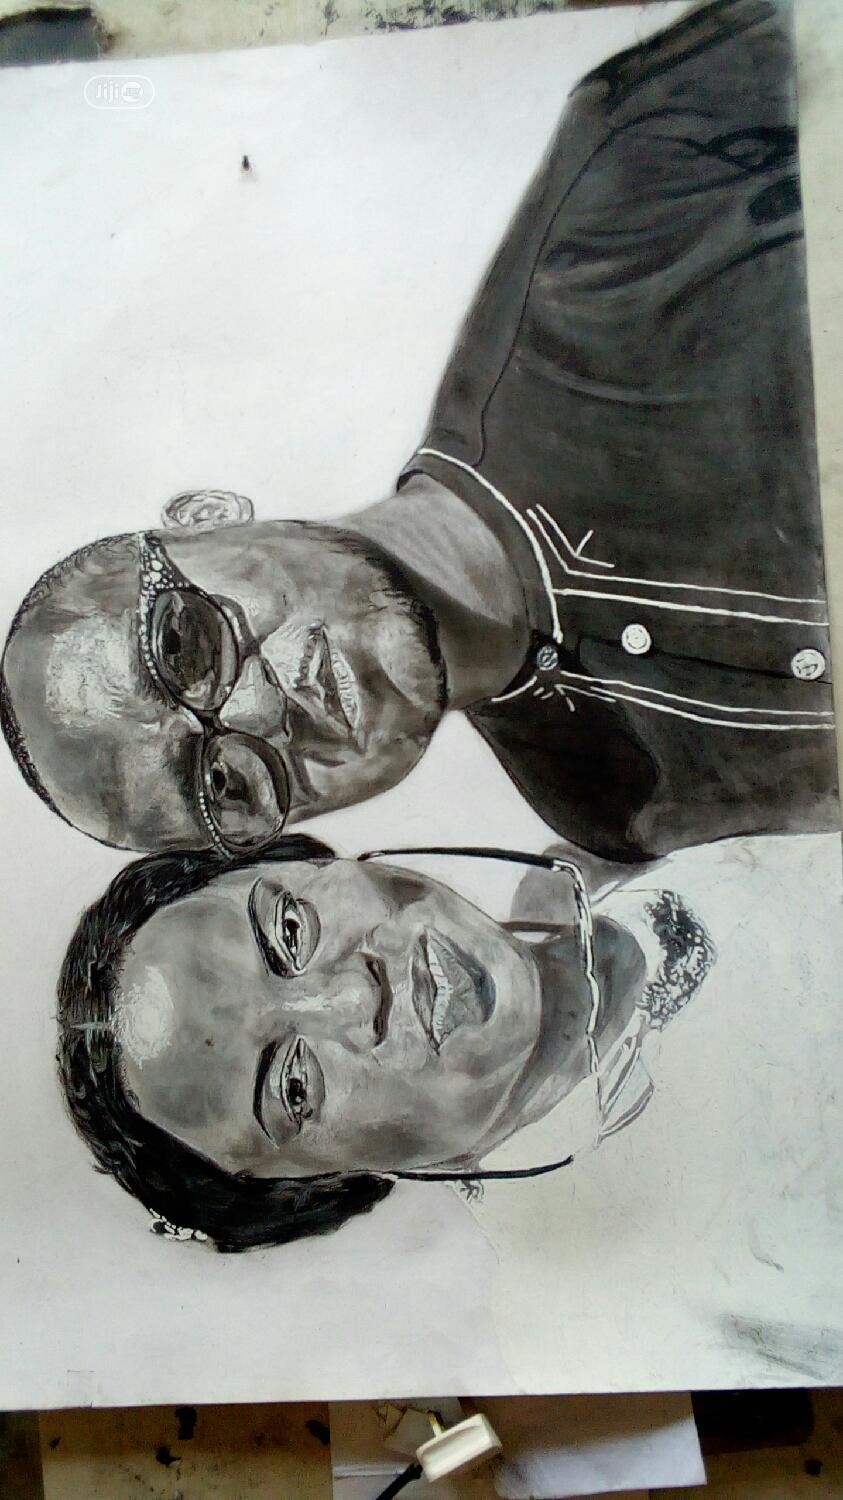 Paint and Pencil Artwork | Arts & Crafts for sale in Surulere, Lagos State, Nigeria